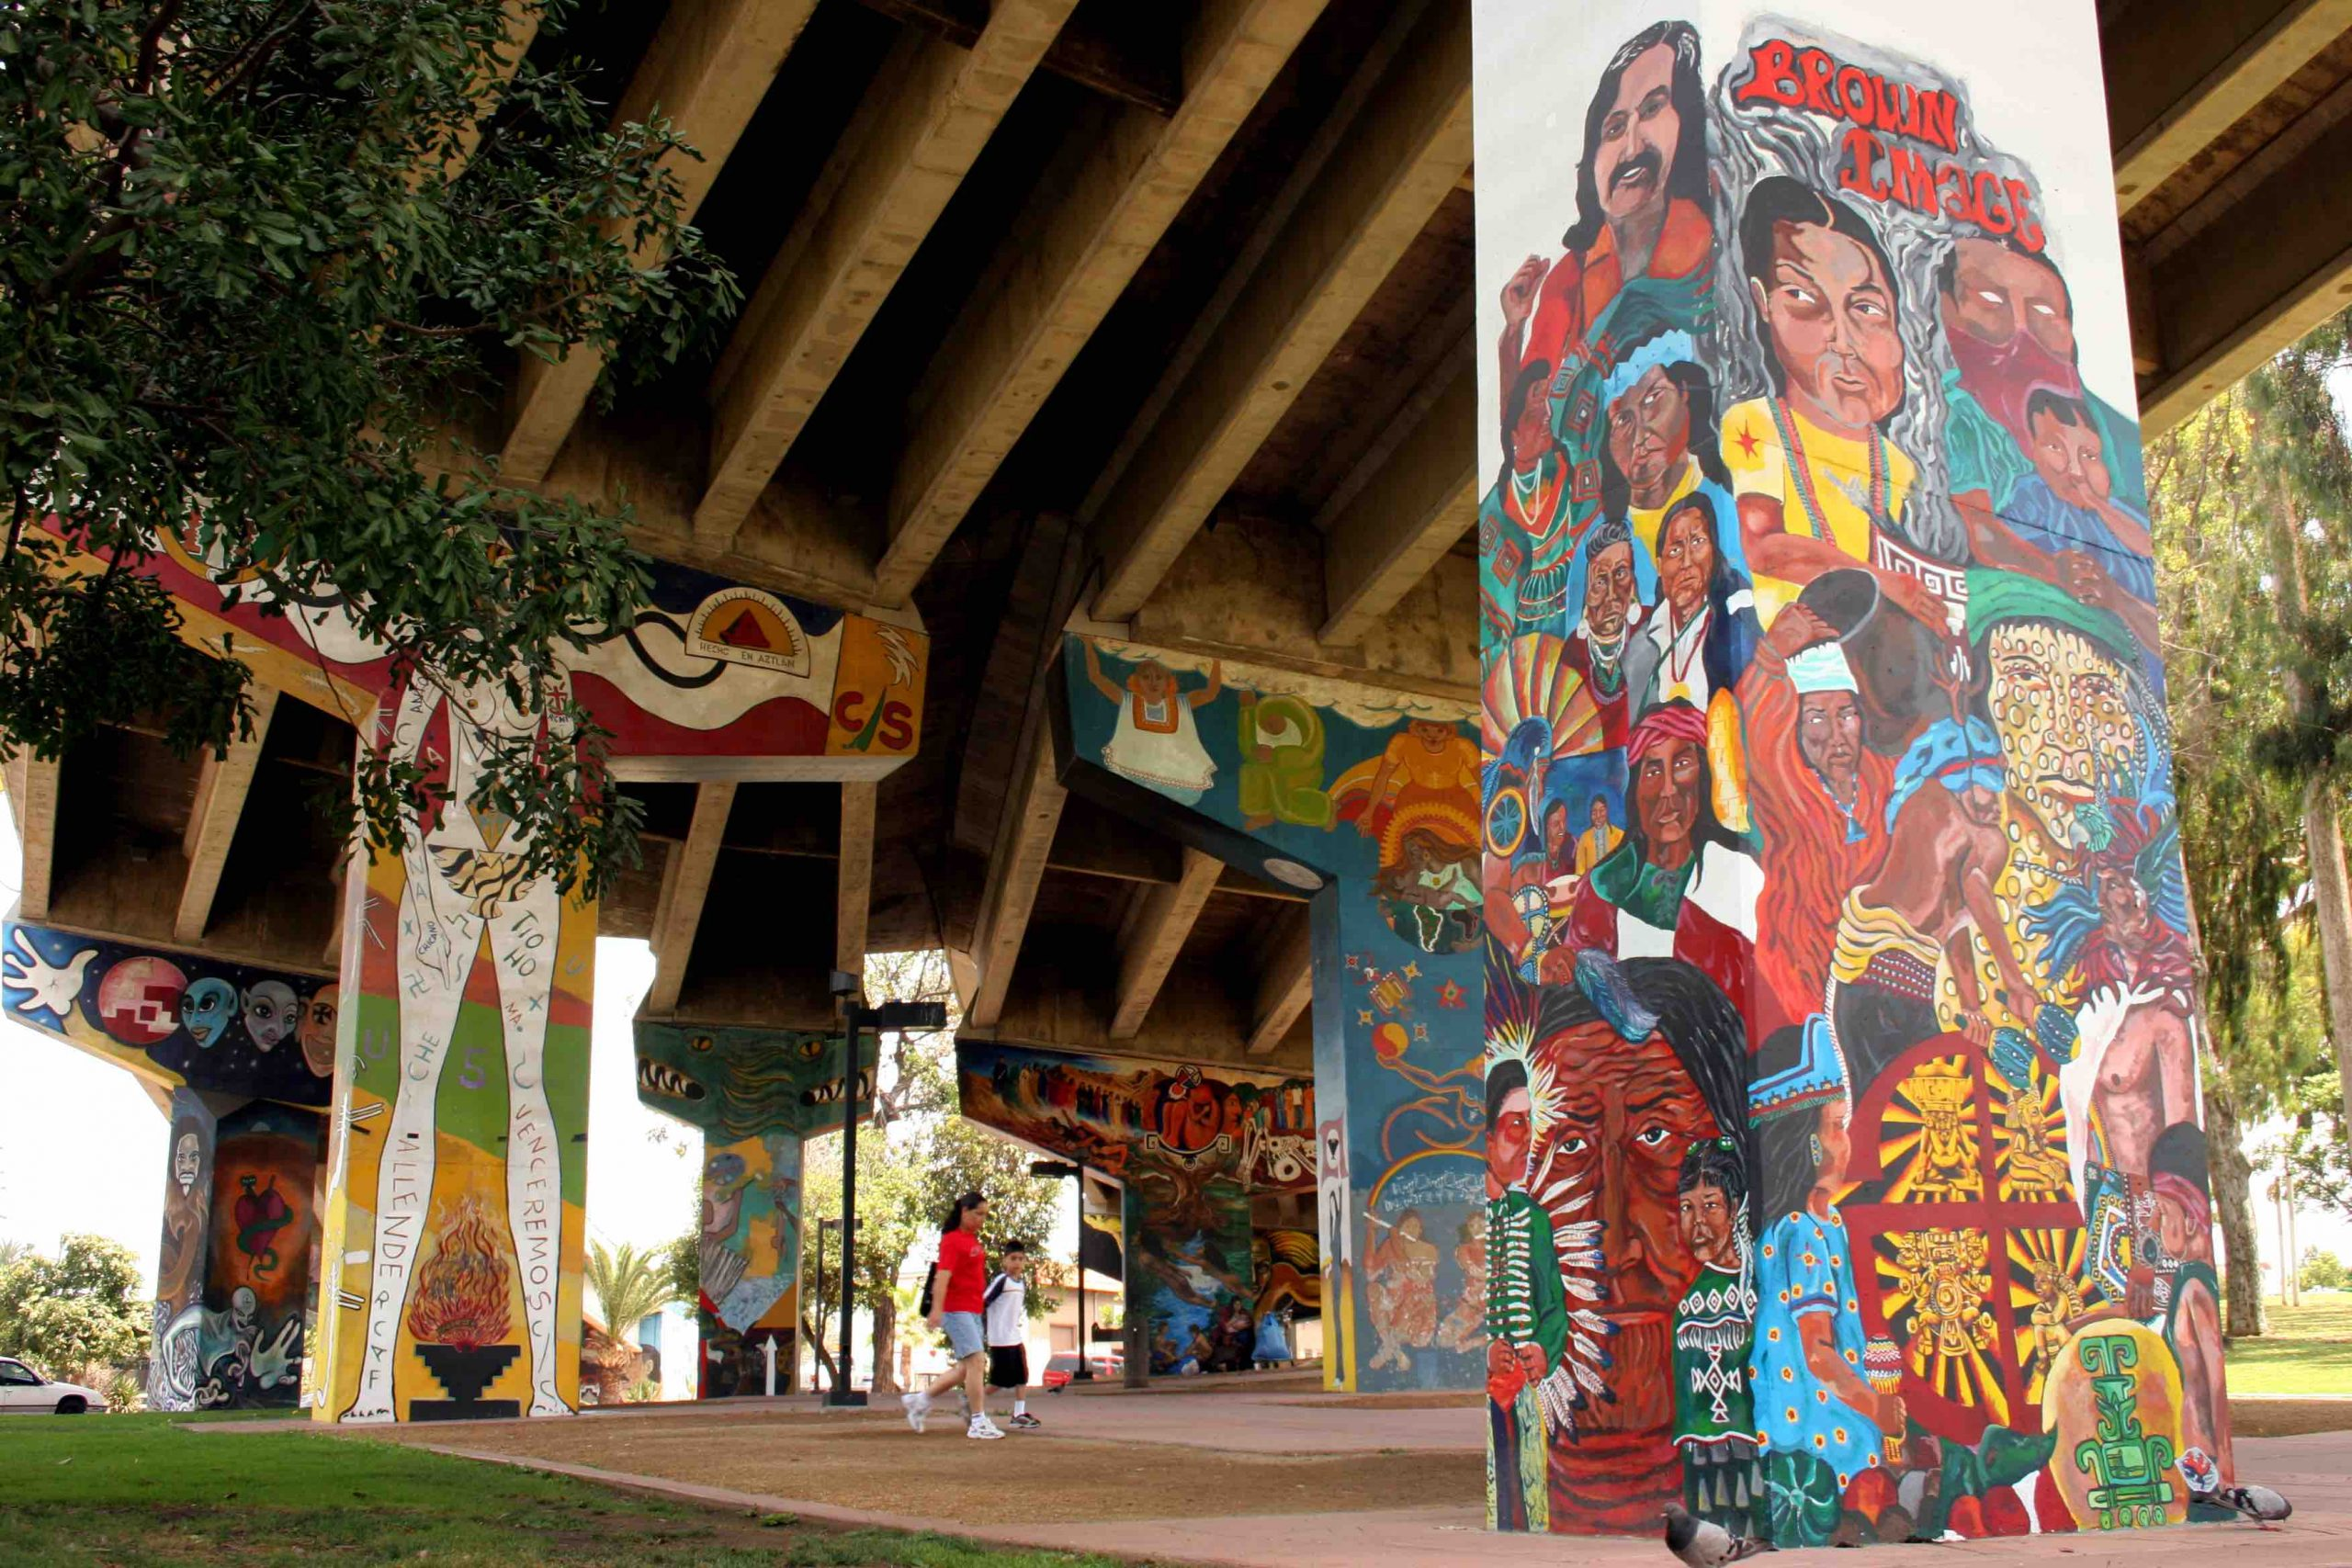 SUNDAY: Chicano Park on Display as Part of Historical Architecture Showcase